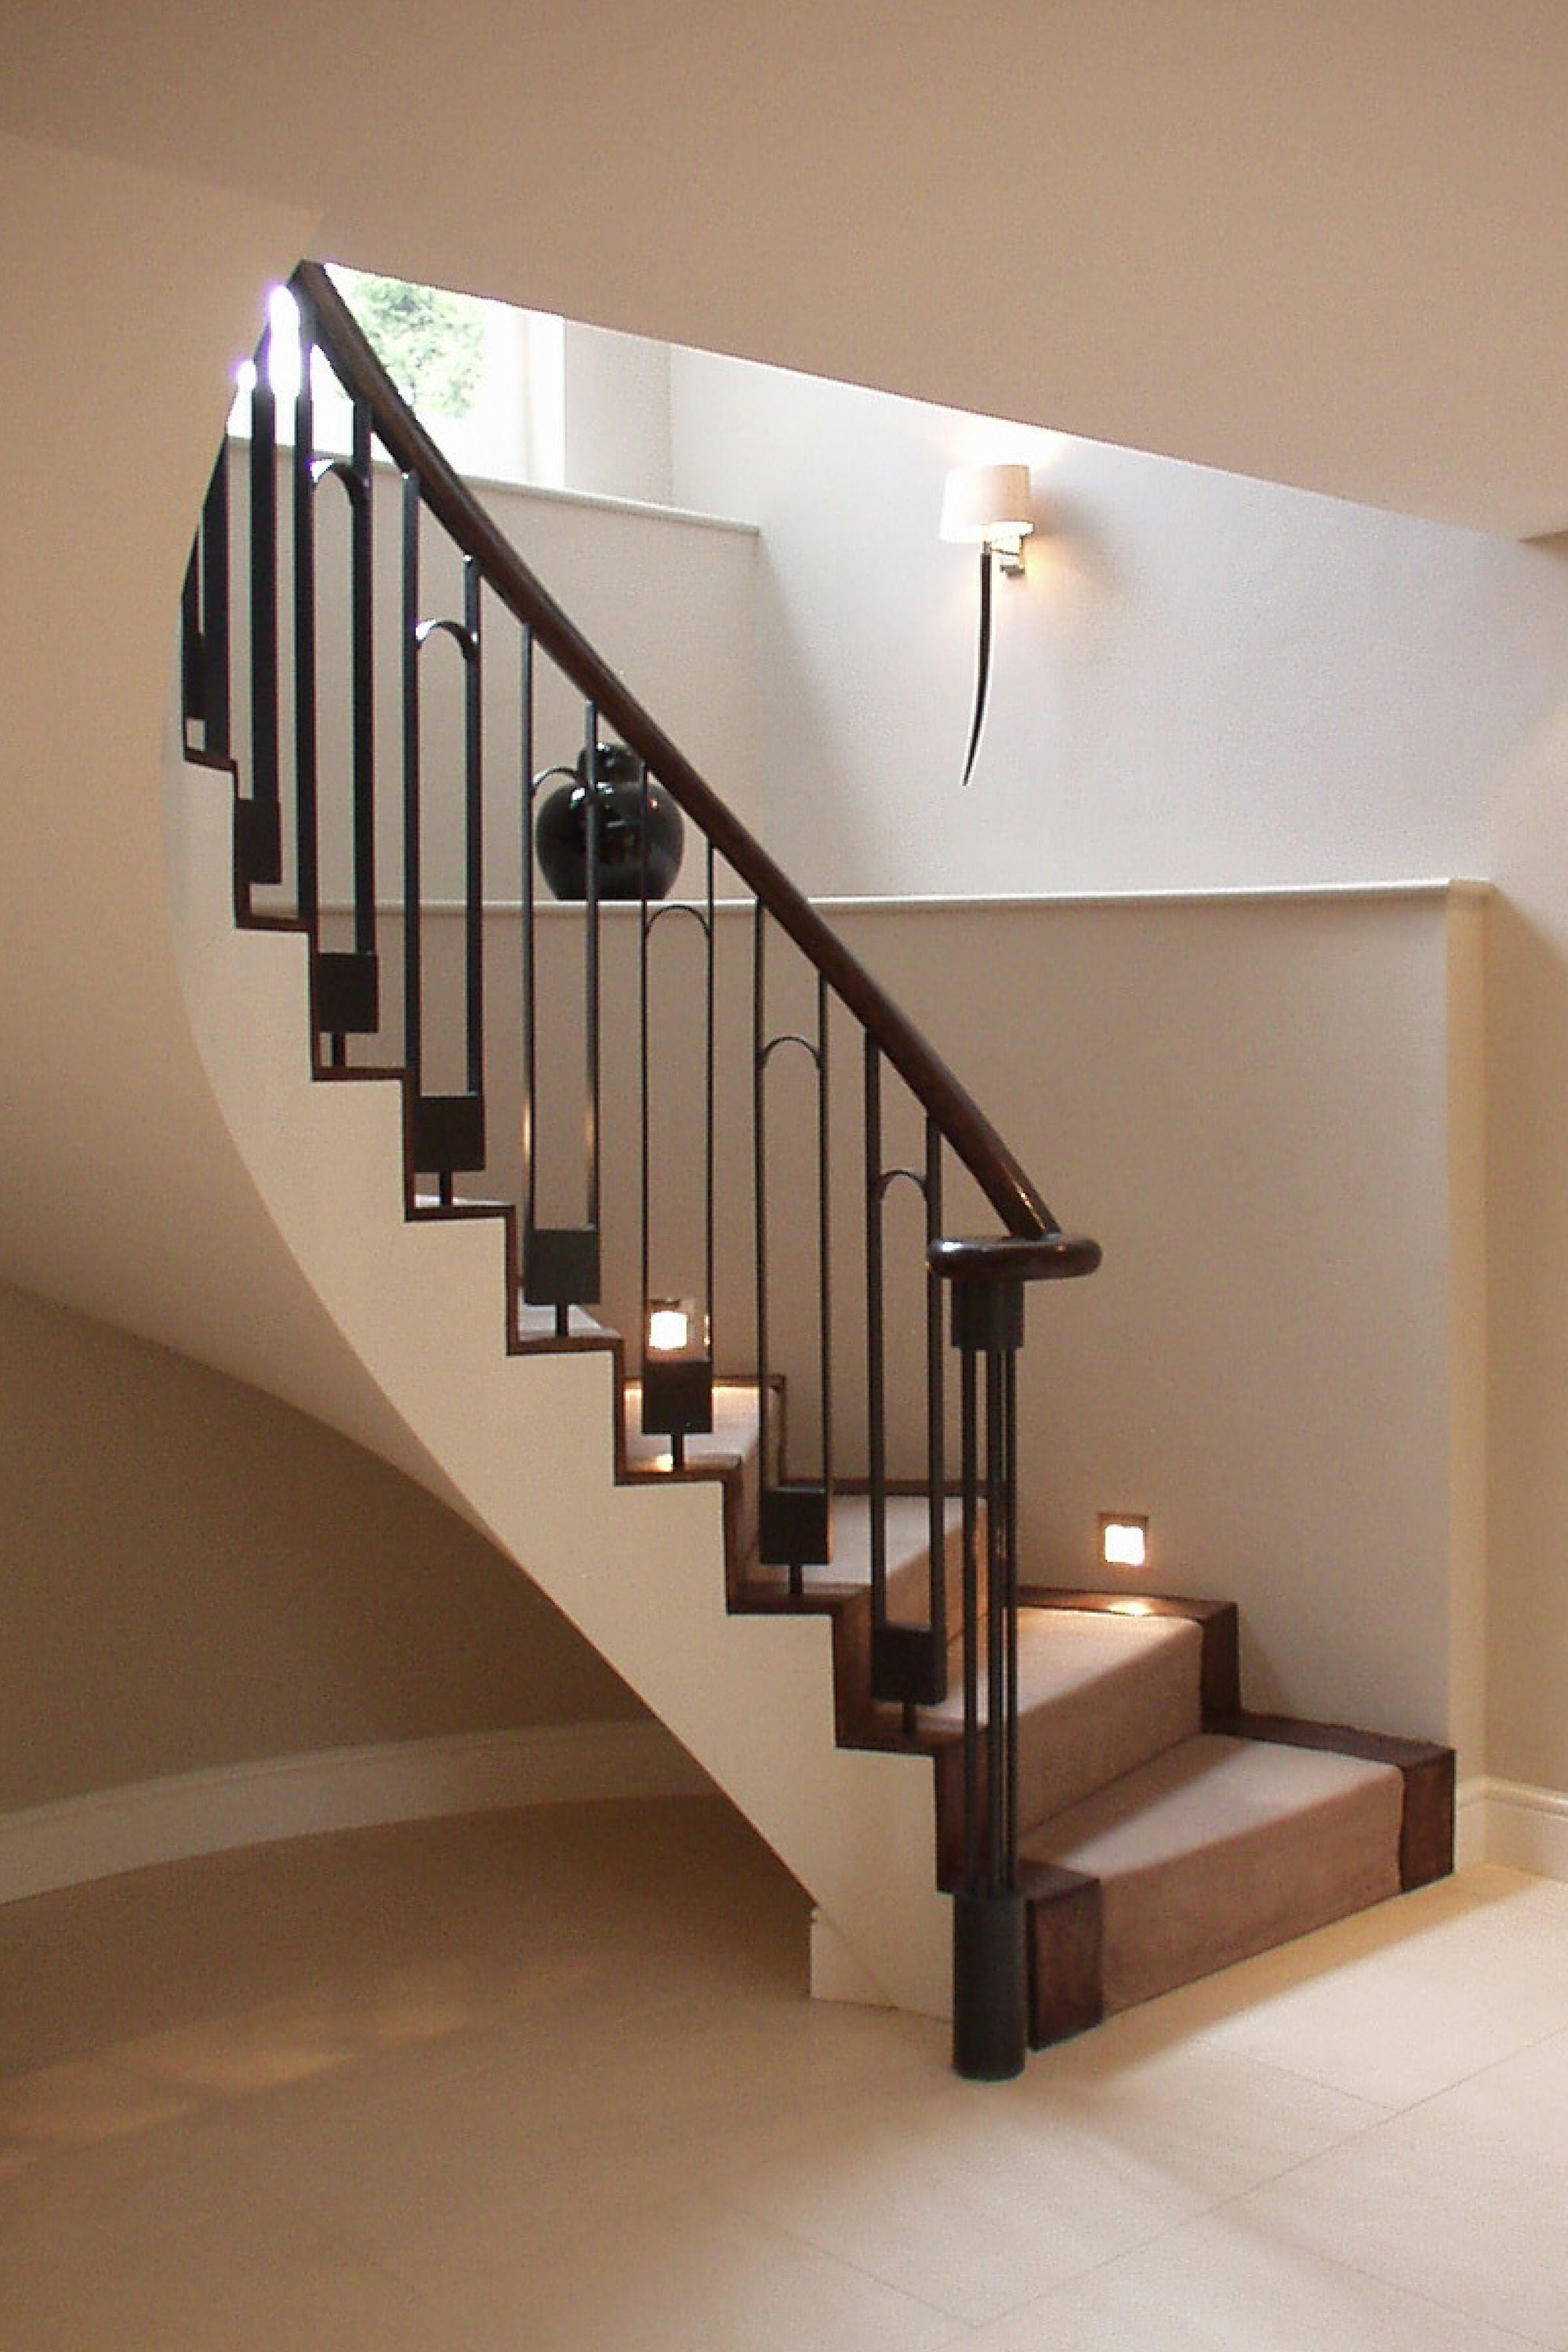 Curved staircase with balustrade